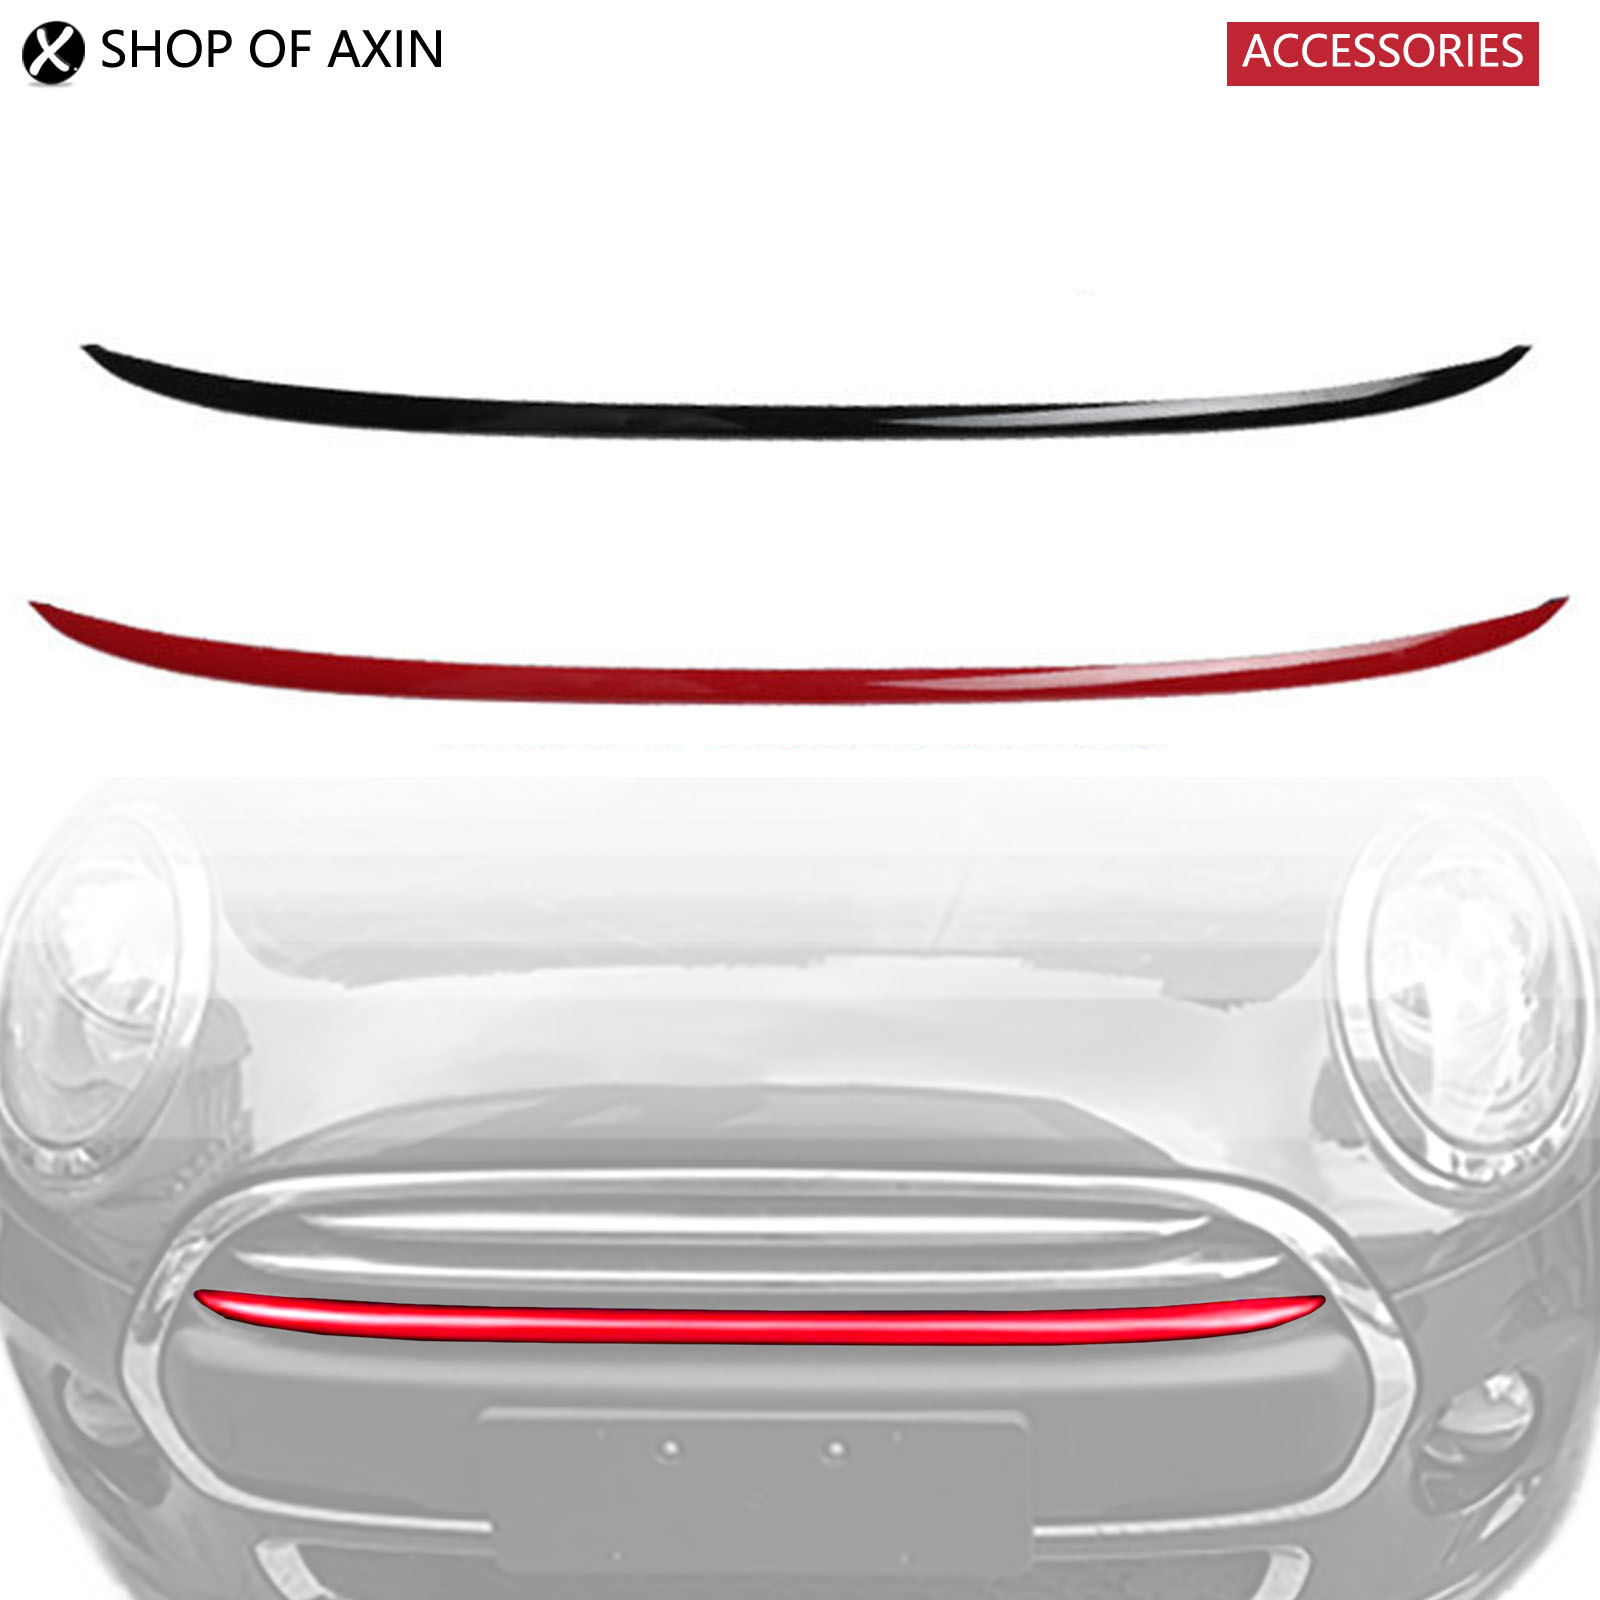 Mini Radiator Grille Bar Deco Smooth Cover For Mini Cooper Cooeper S Countryman F55 F56 R60 цена